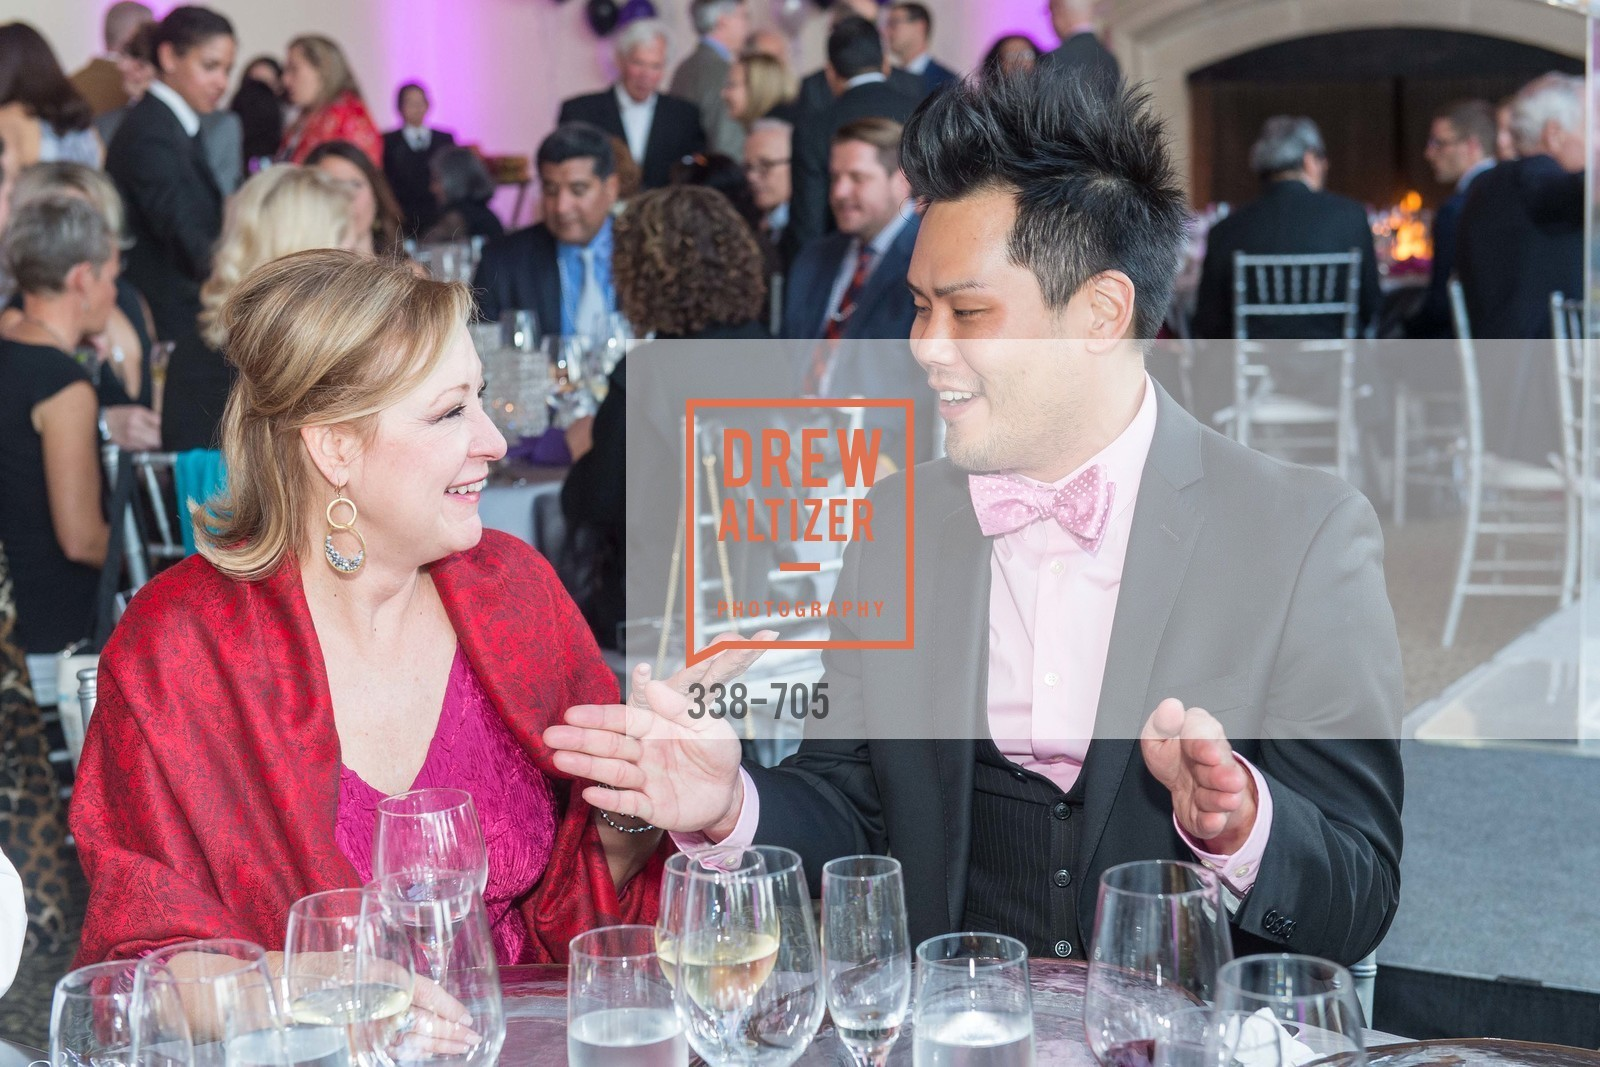 Susan Thompson, Christopher Lee, MAGIC THEATRE'S 2015 Gala:  A Night of Magic, US, May 7th, 2015,Drew Altizer, Drew Altizer Photography, full-service agency, private events, San Francisco photographer, photographer california